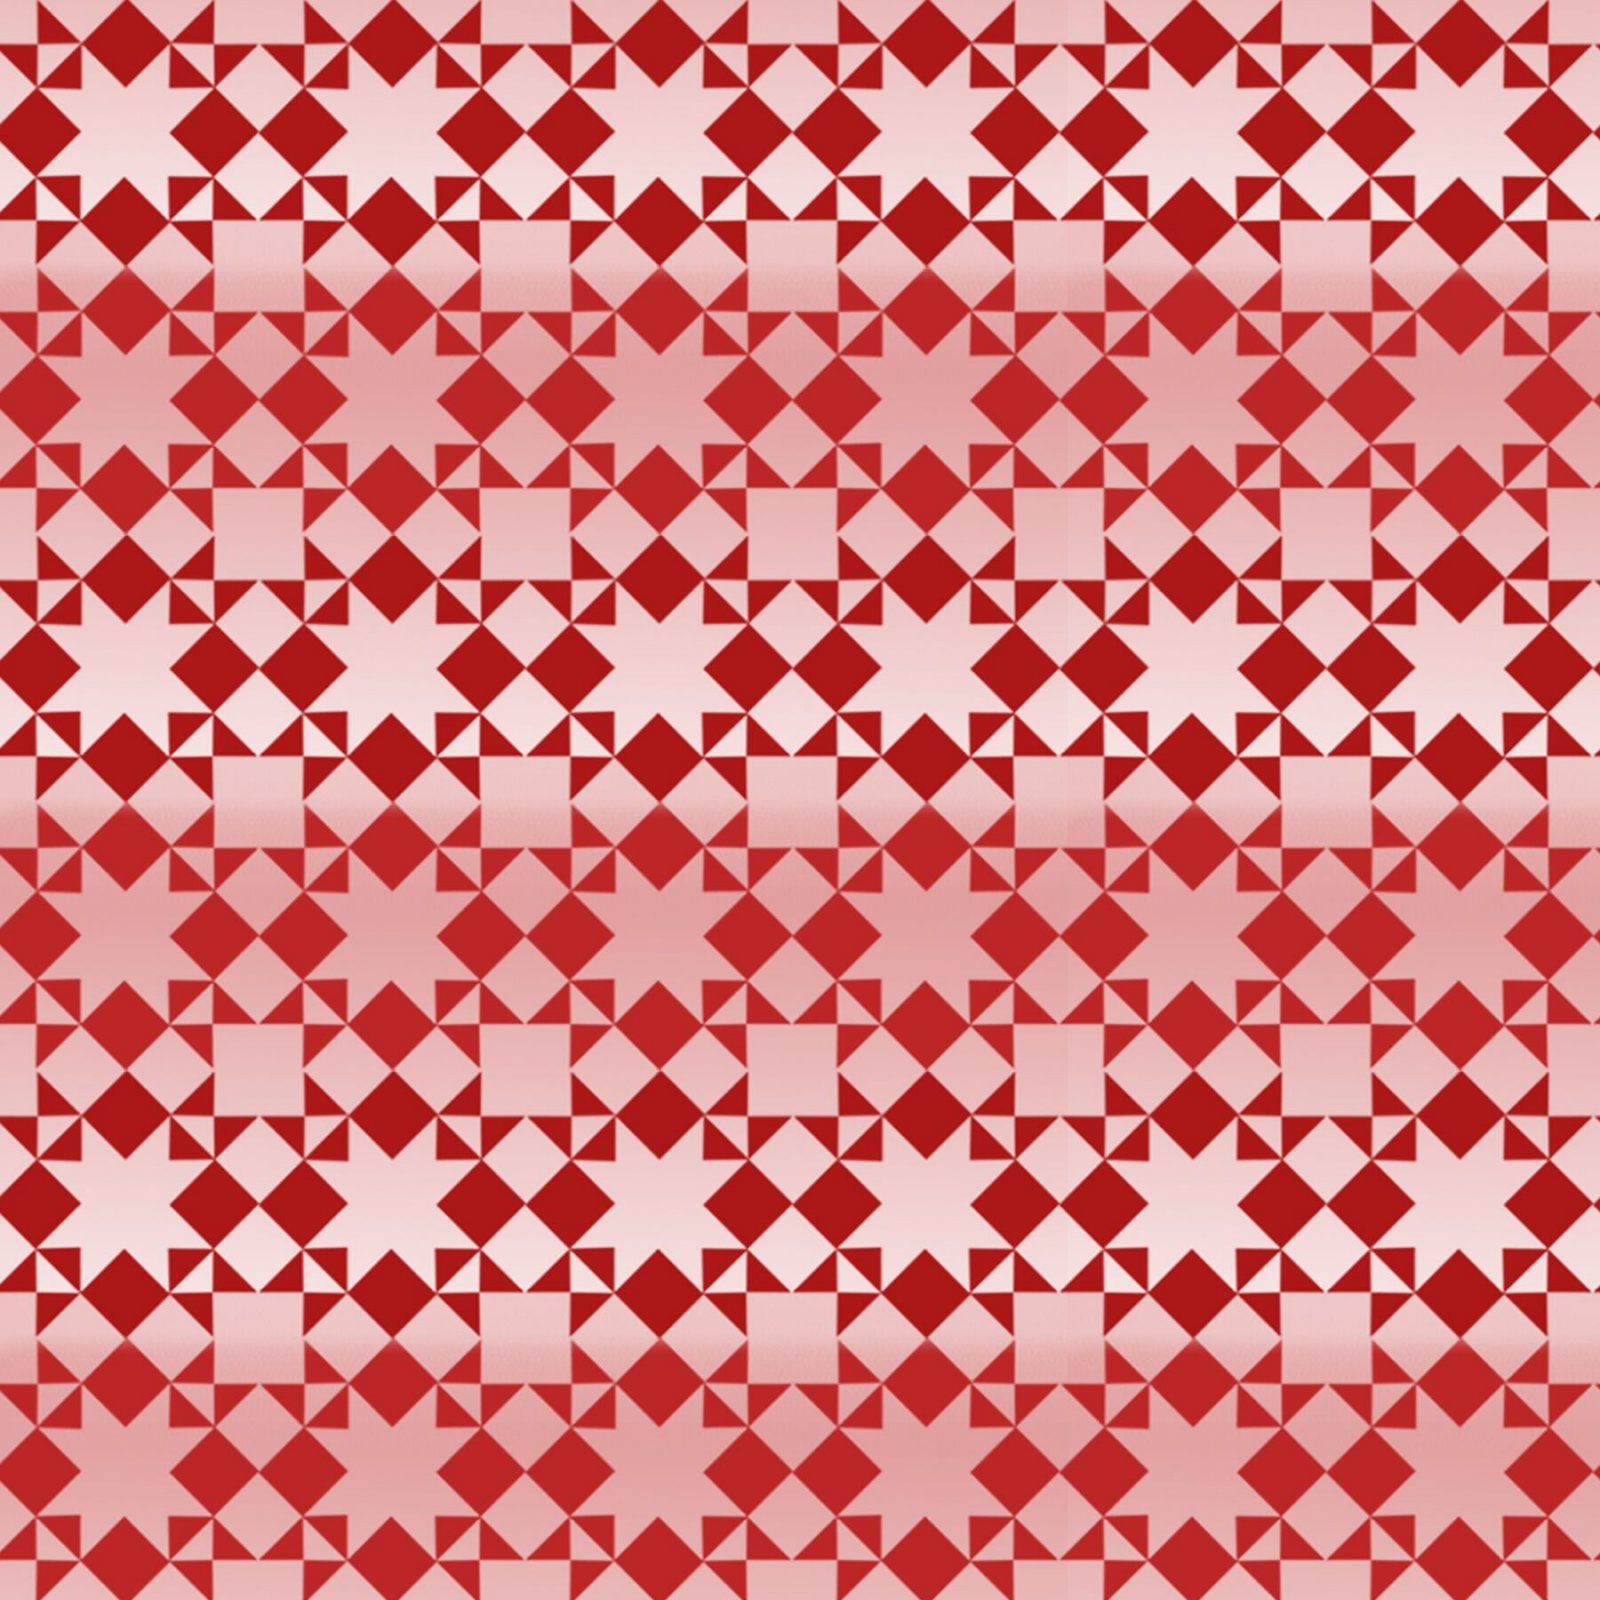 Small Quilt Pattern Red on White